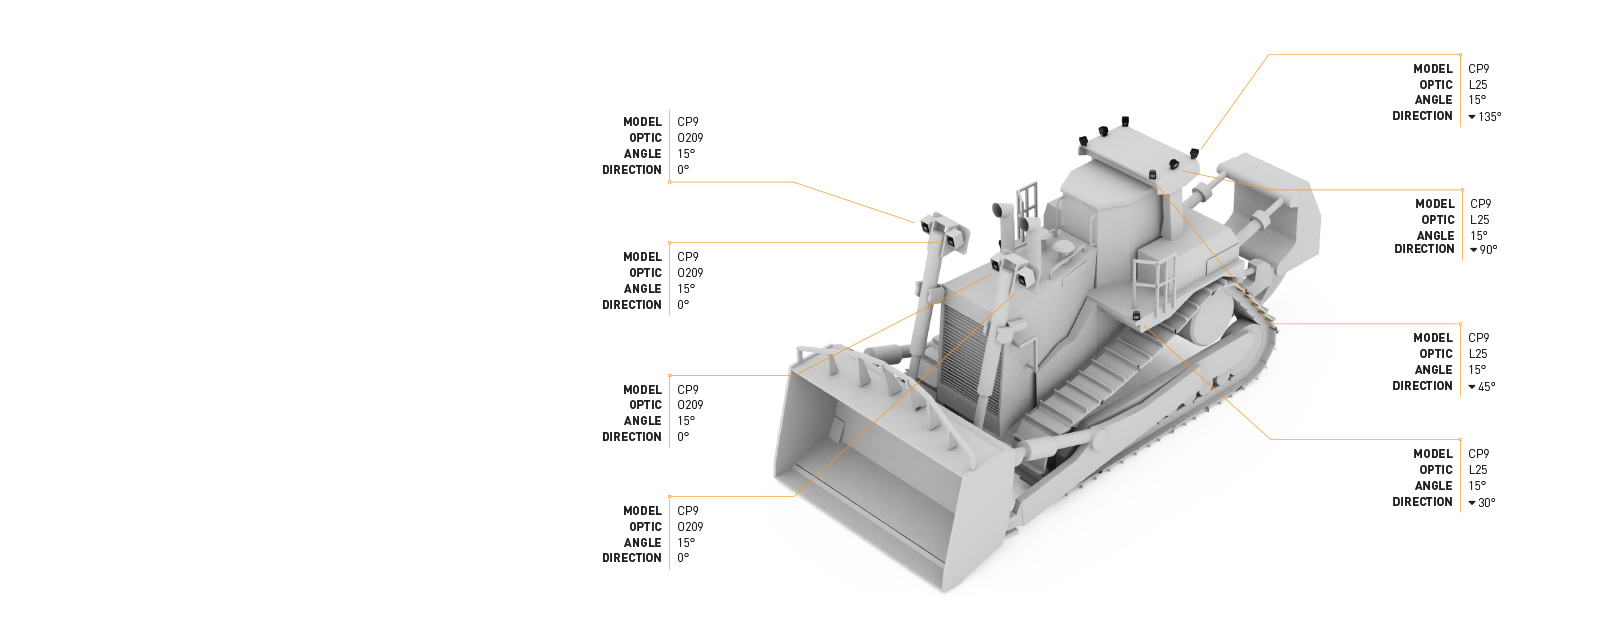 Look through this Lighting Design Simulation Report and explore how Coolon CP9 LED Floodlight improves the light output of a Caterpillar D11T mining bulldozer.